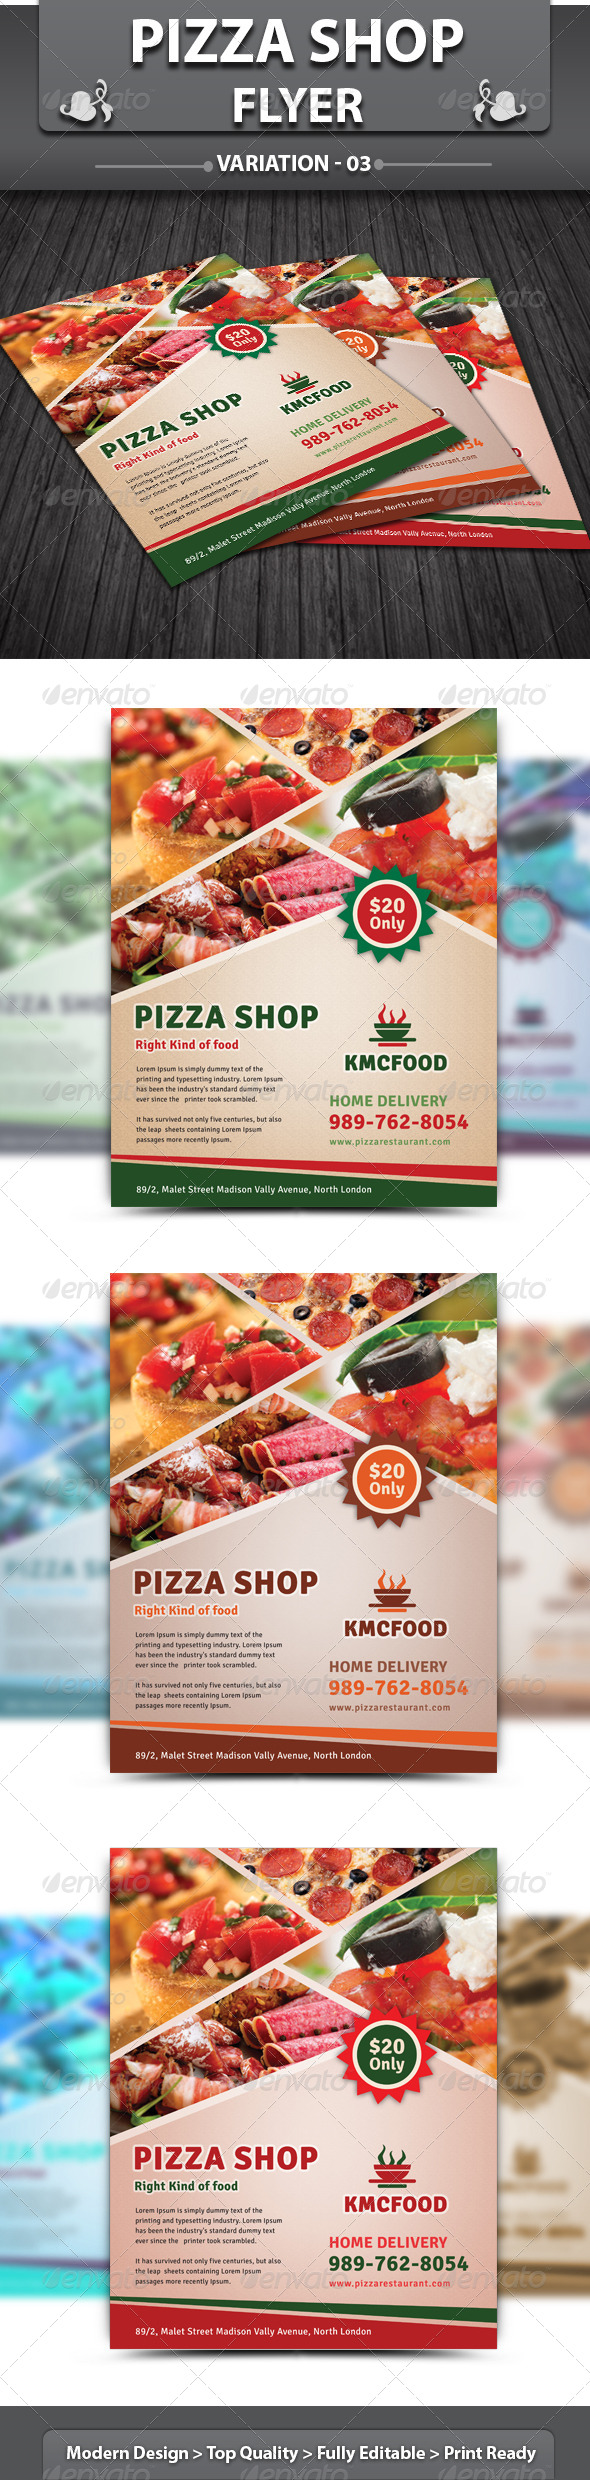 Restaurant Business Flyer | Volume 2 - Restaurant Flyers